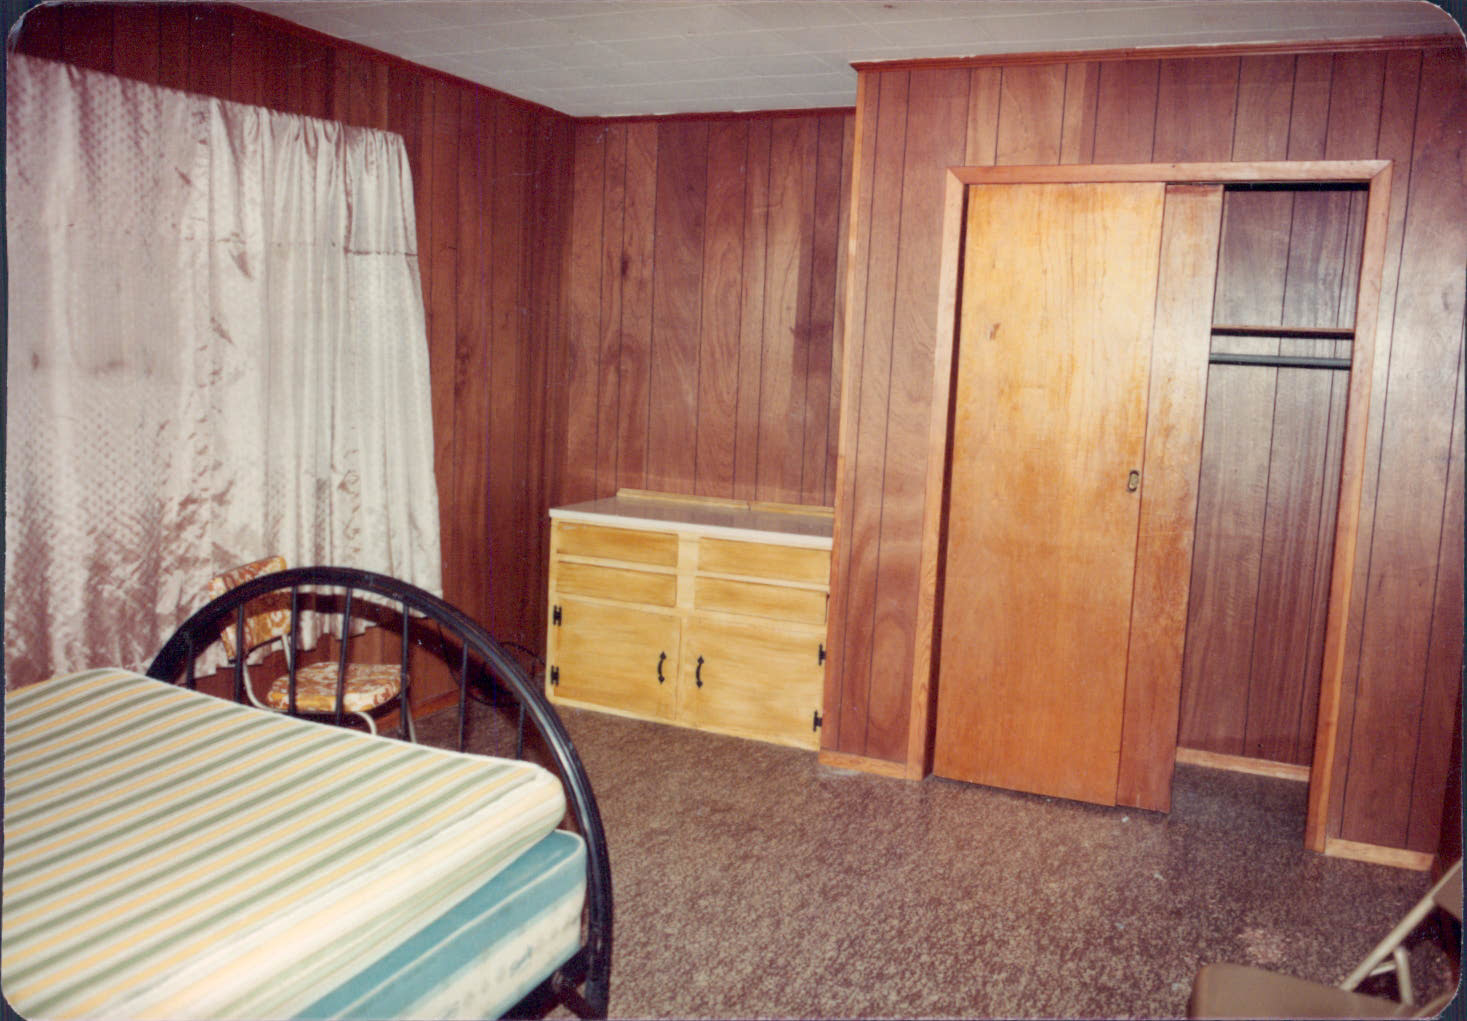 Bedroom where Gary Kergan fought for his life